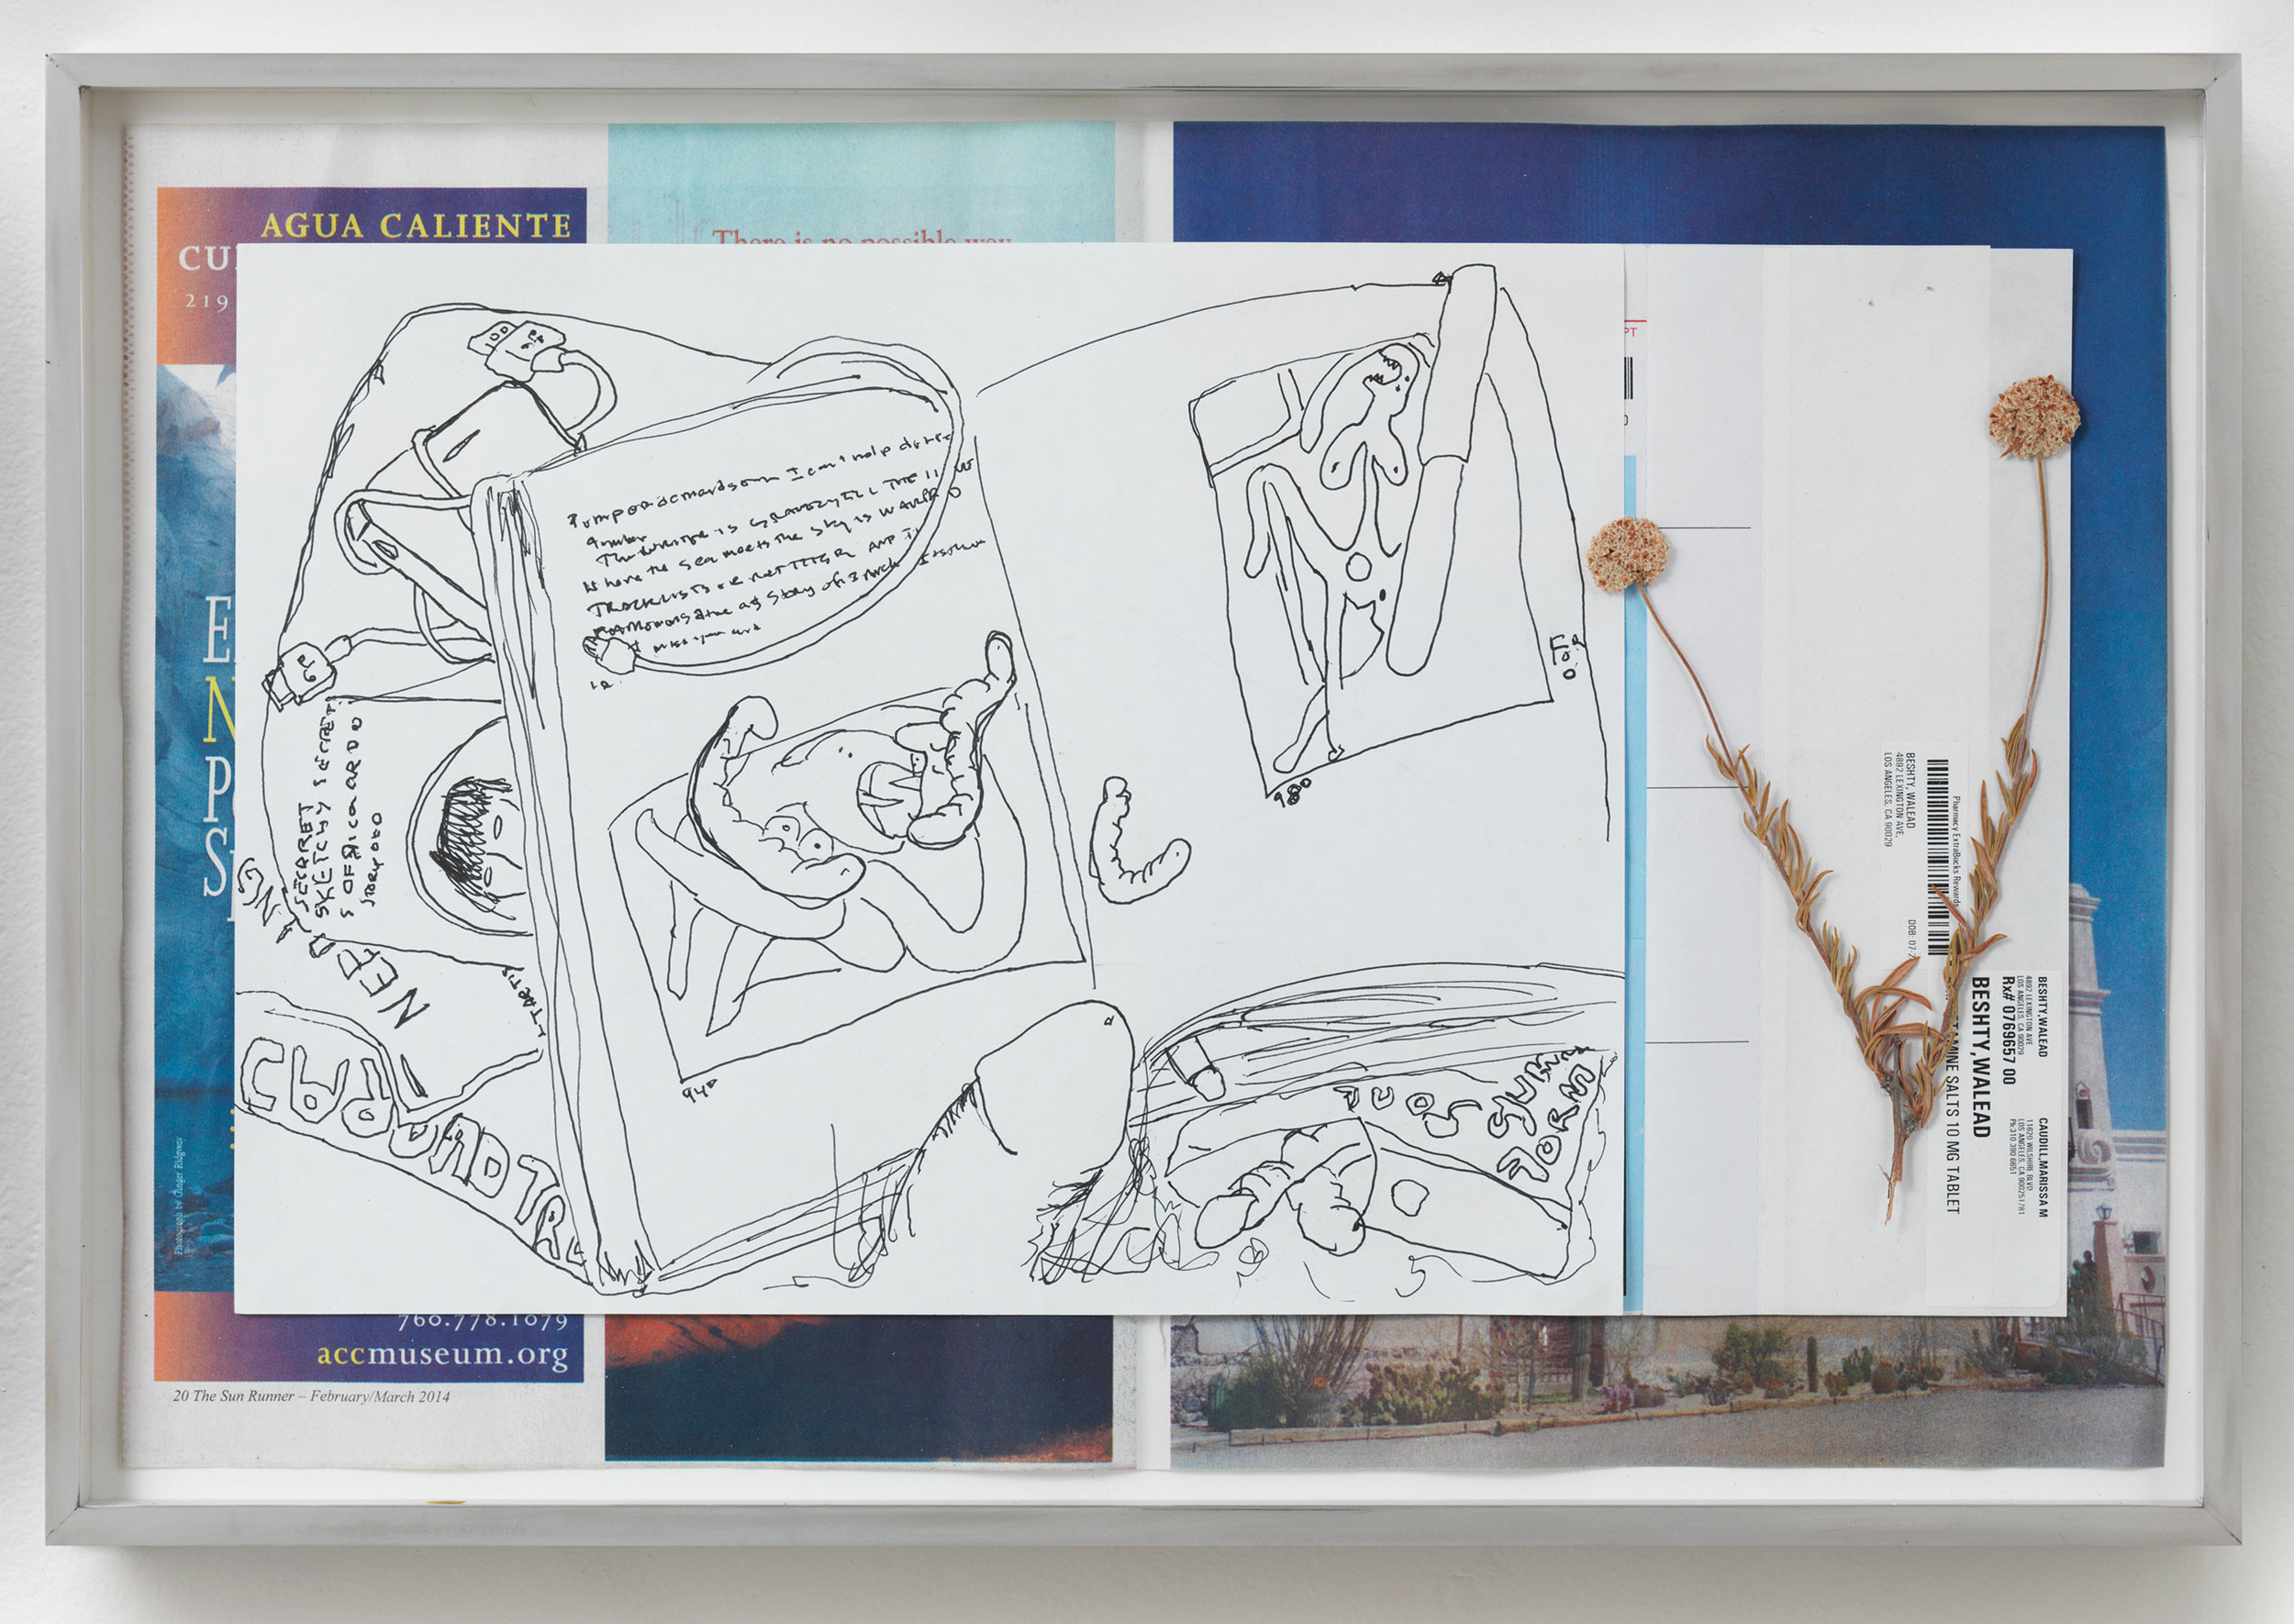 Picasso and Truth: From Cubism to Guernica I   2014  Ink on paper, receipt, dried flower, newspaper  11 3/4 x 17 3/8 inches   Drawings, 2014–    Gastarbeiten, 2014